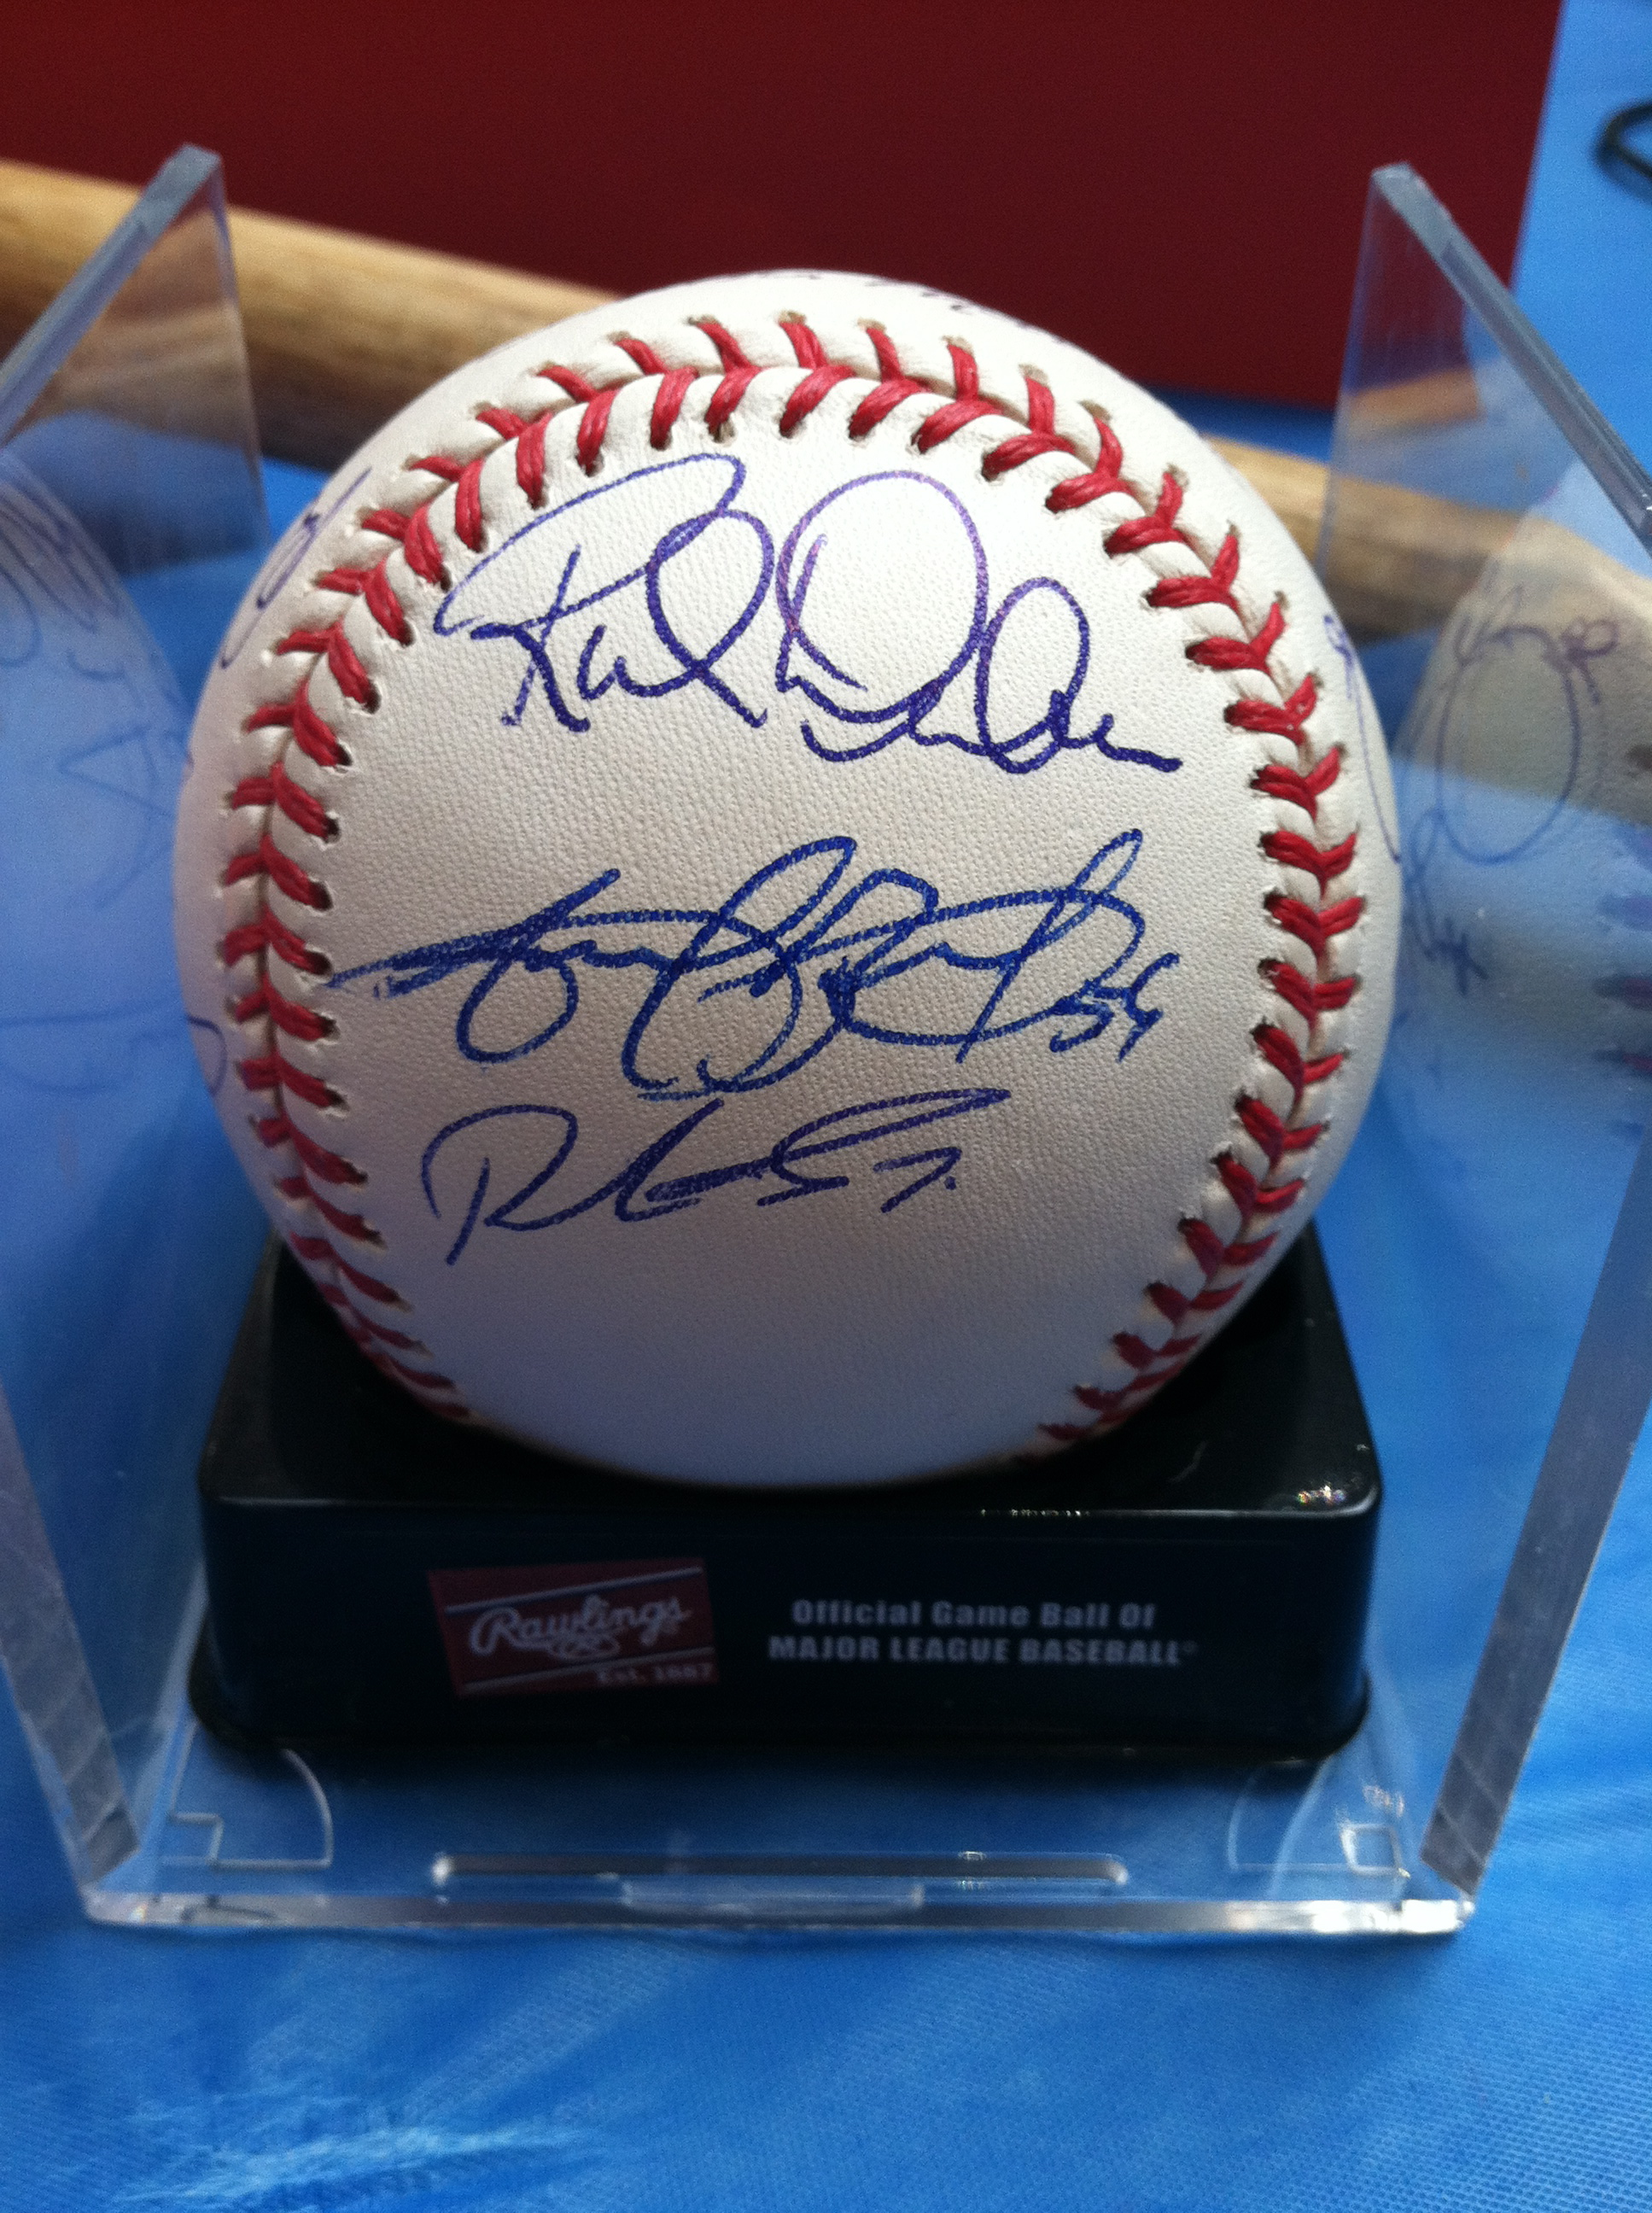 2009 Phillies Team Ball